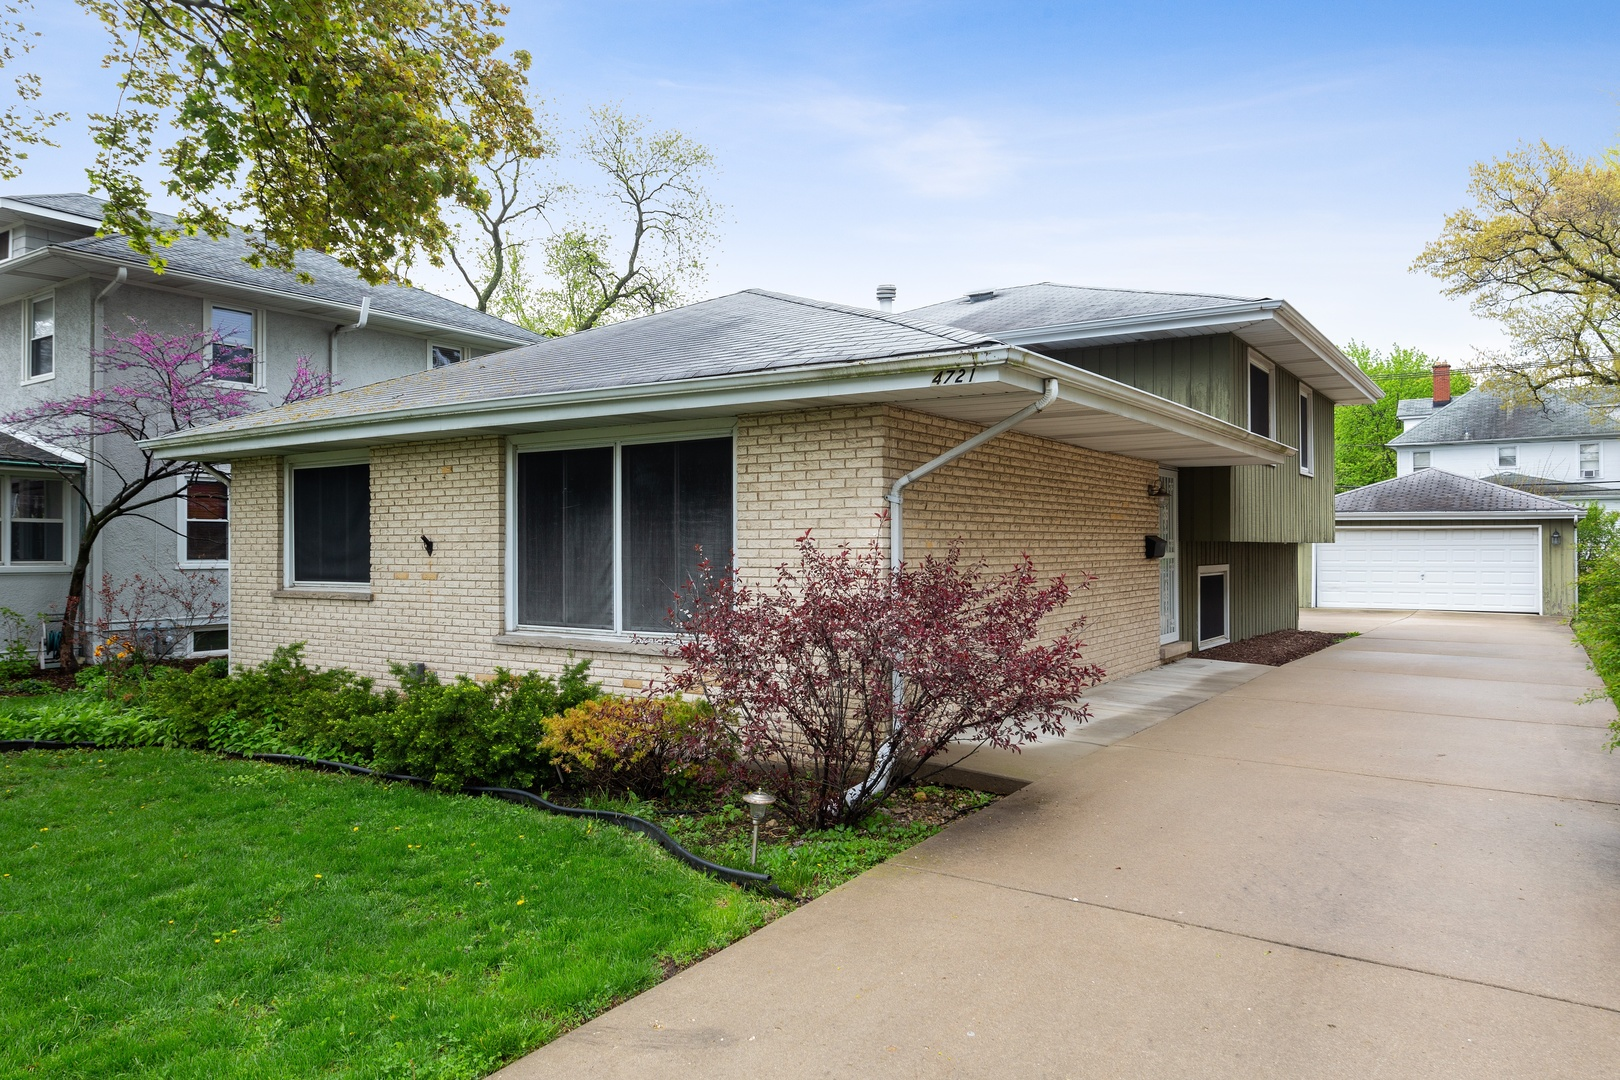 Photo for 4721 Main Street, DOWNERS GROVE, IL 60515 (MLS # 10361128)